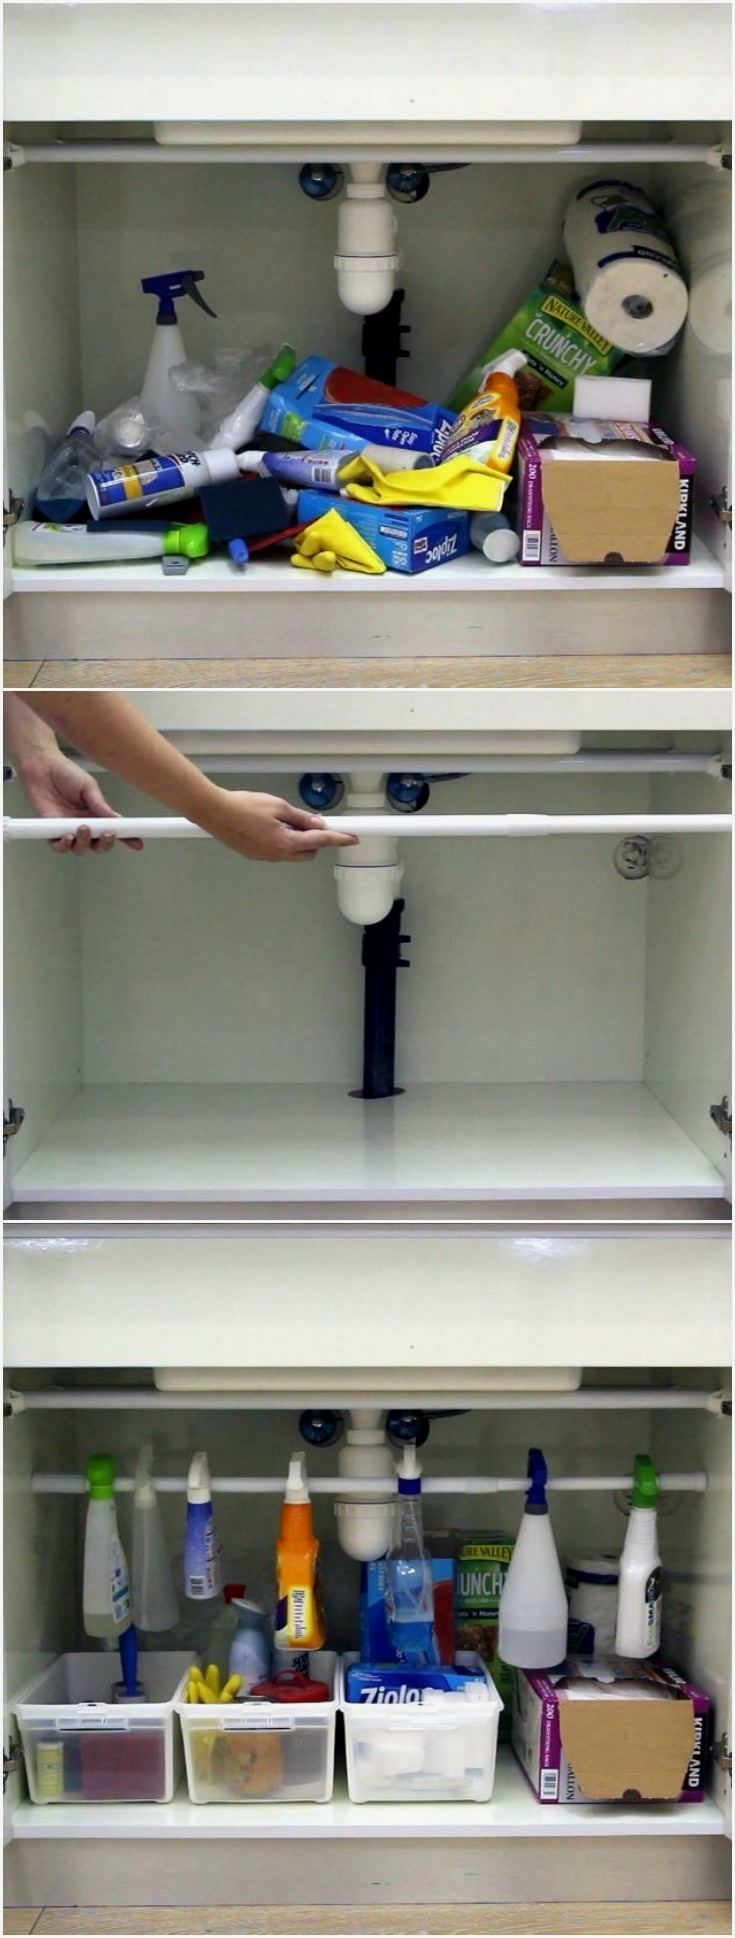 If You Have A Mess Under Your Kitchen Sink Cabinet, There